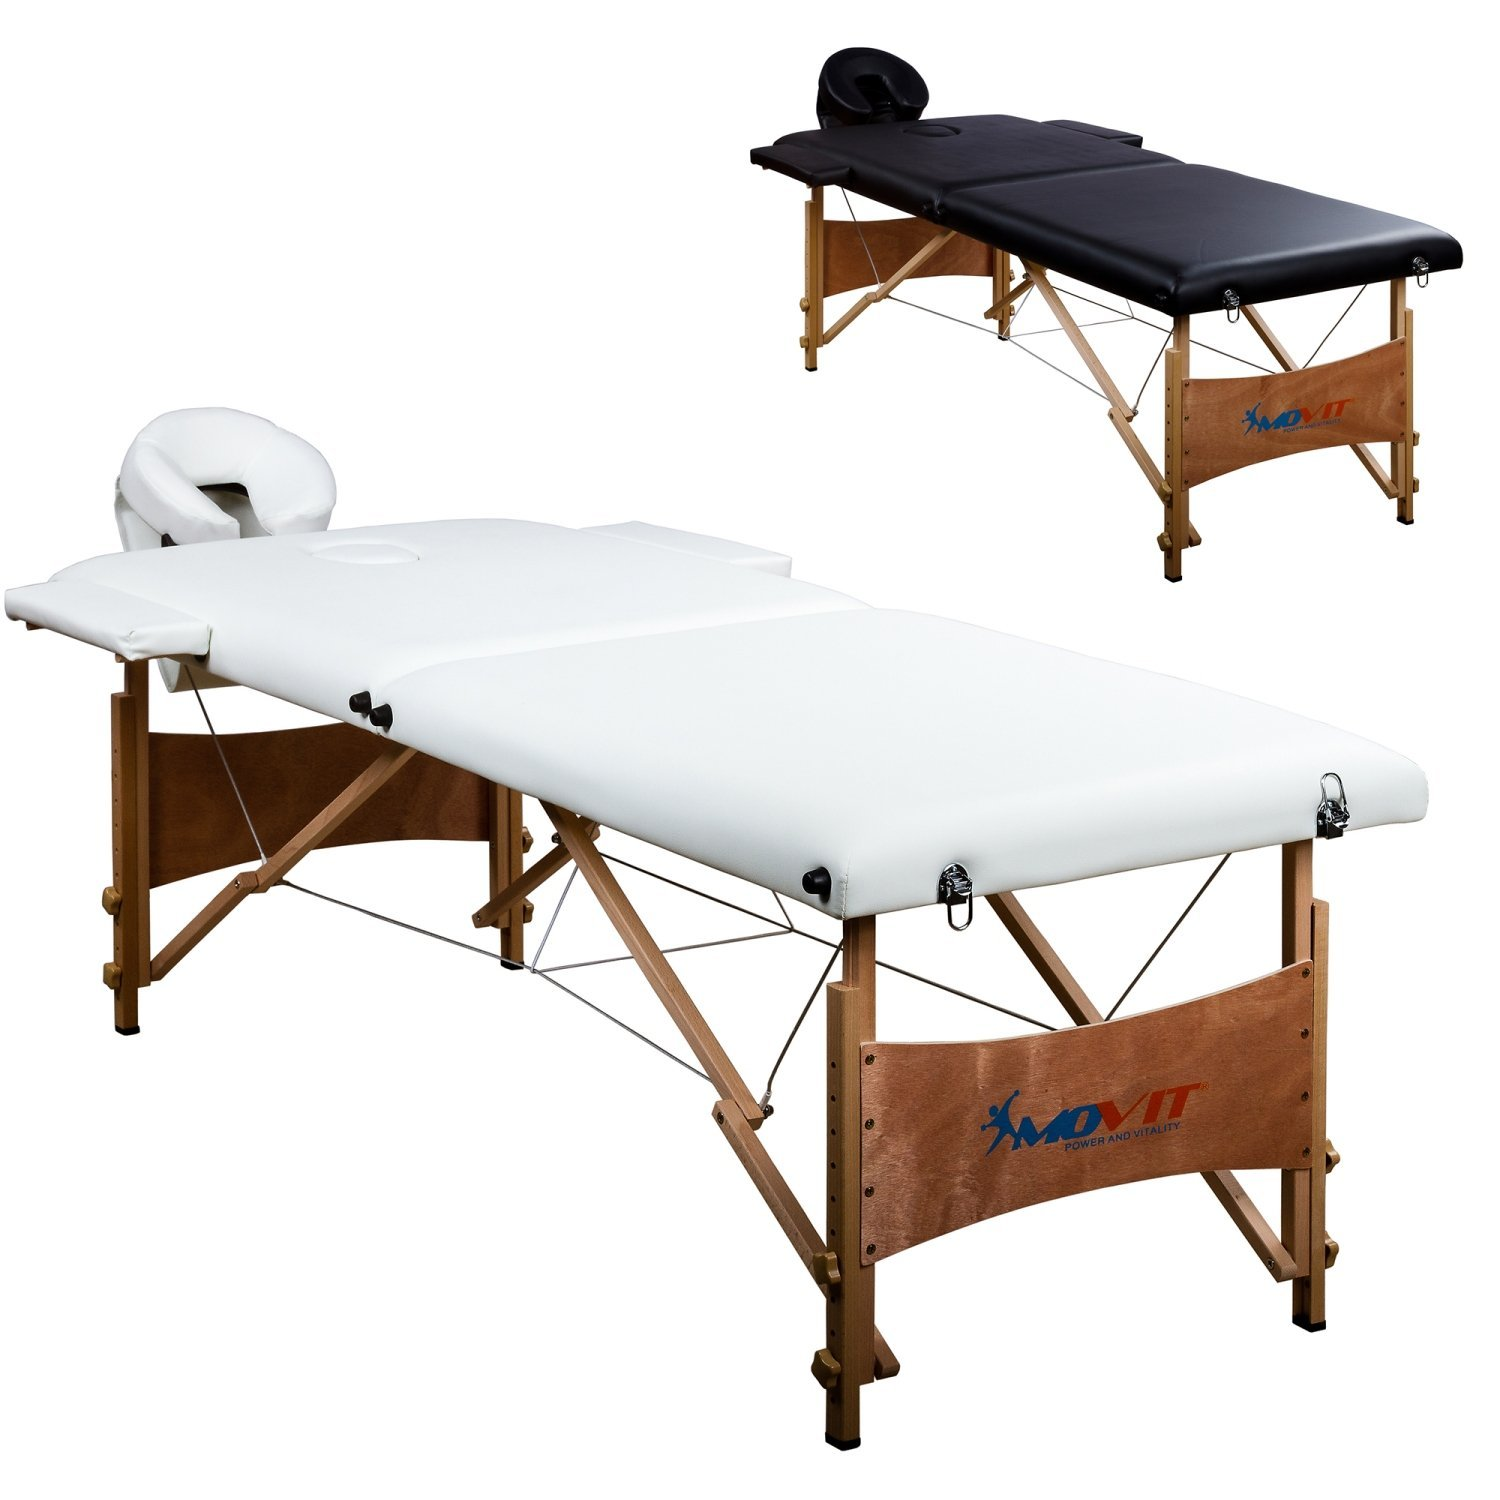 MOVIT mobile Massageliege